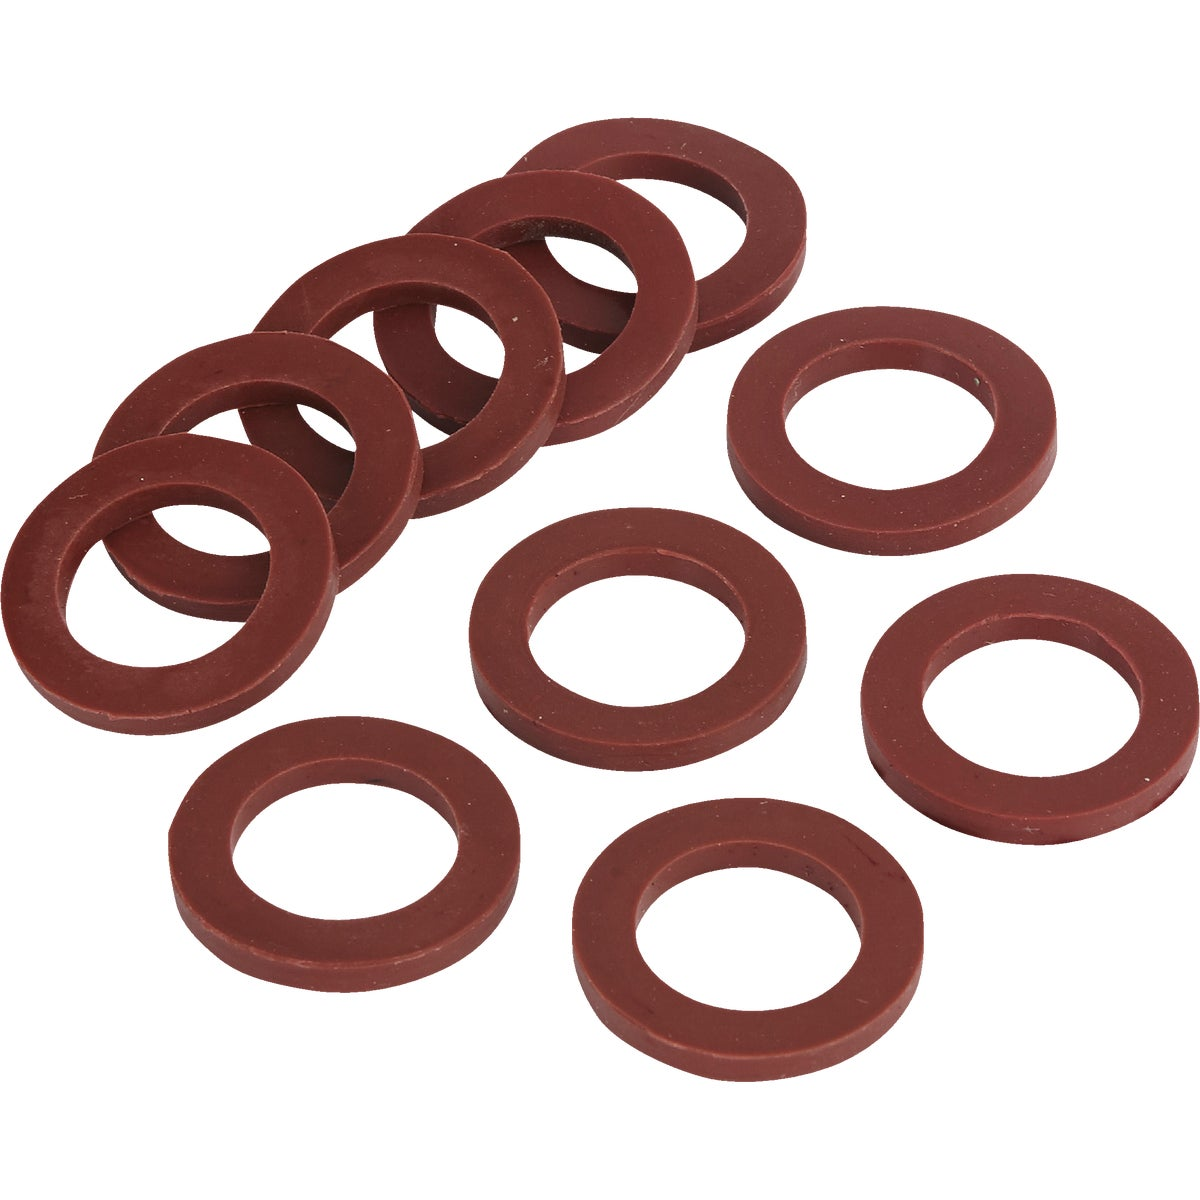 10PC RUBBER HOSE WASHER - DIB01RW by Bosch G W